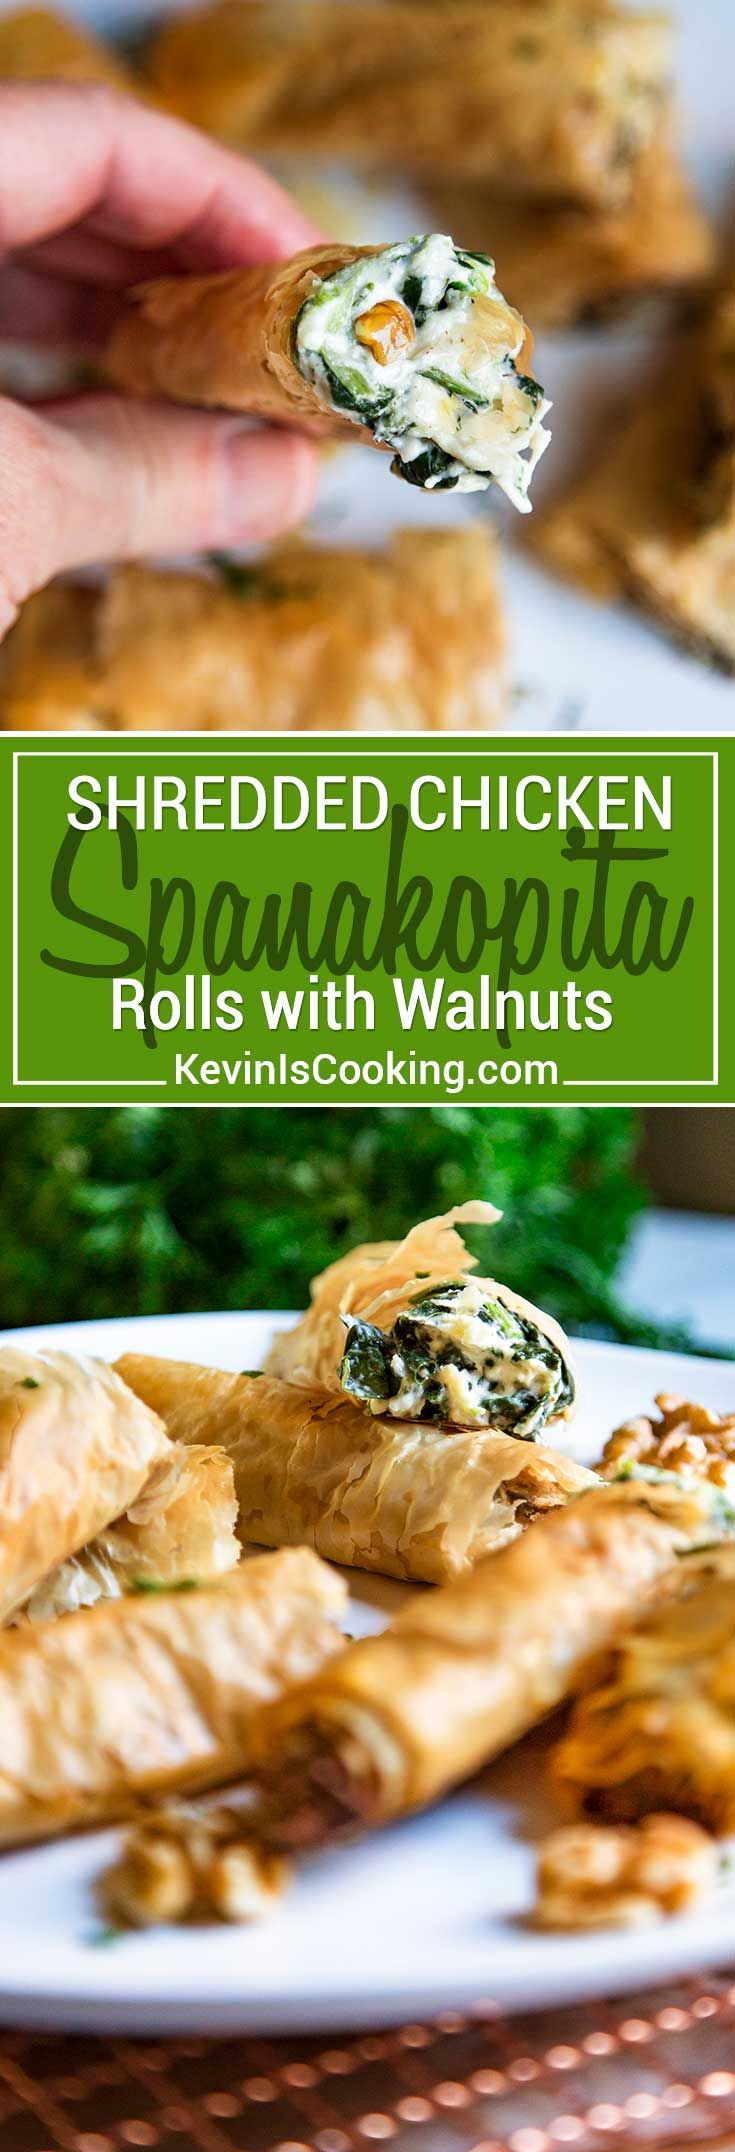 Chicken, walnuts and a cheesy spinach filling all wrapped in layers of flaky fillo dough pastry make these Chicken Spanakopita Rolls with Walnuts so irresistible! via @keviniscooking